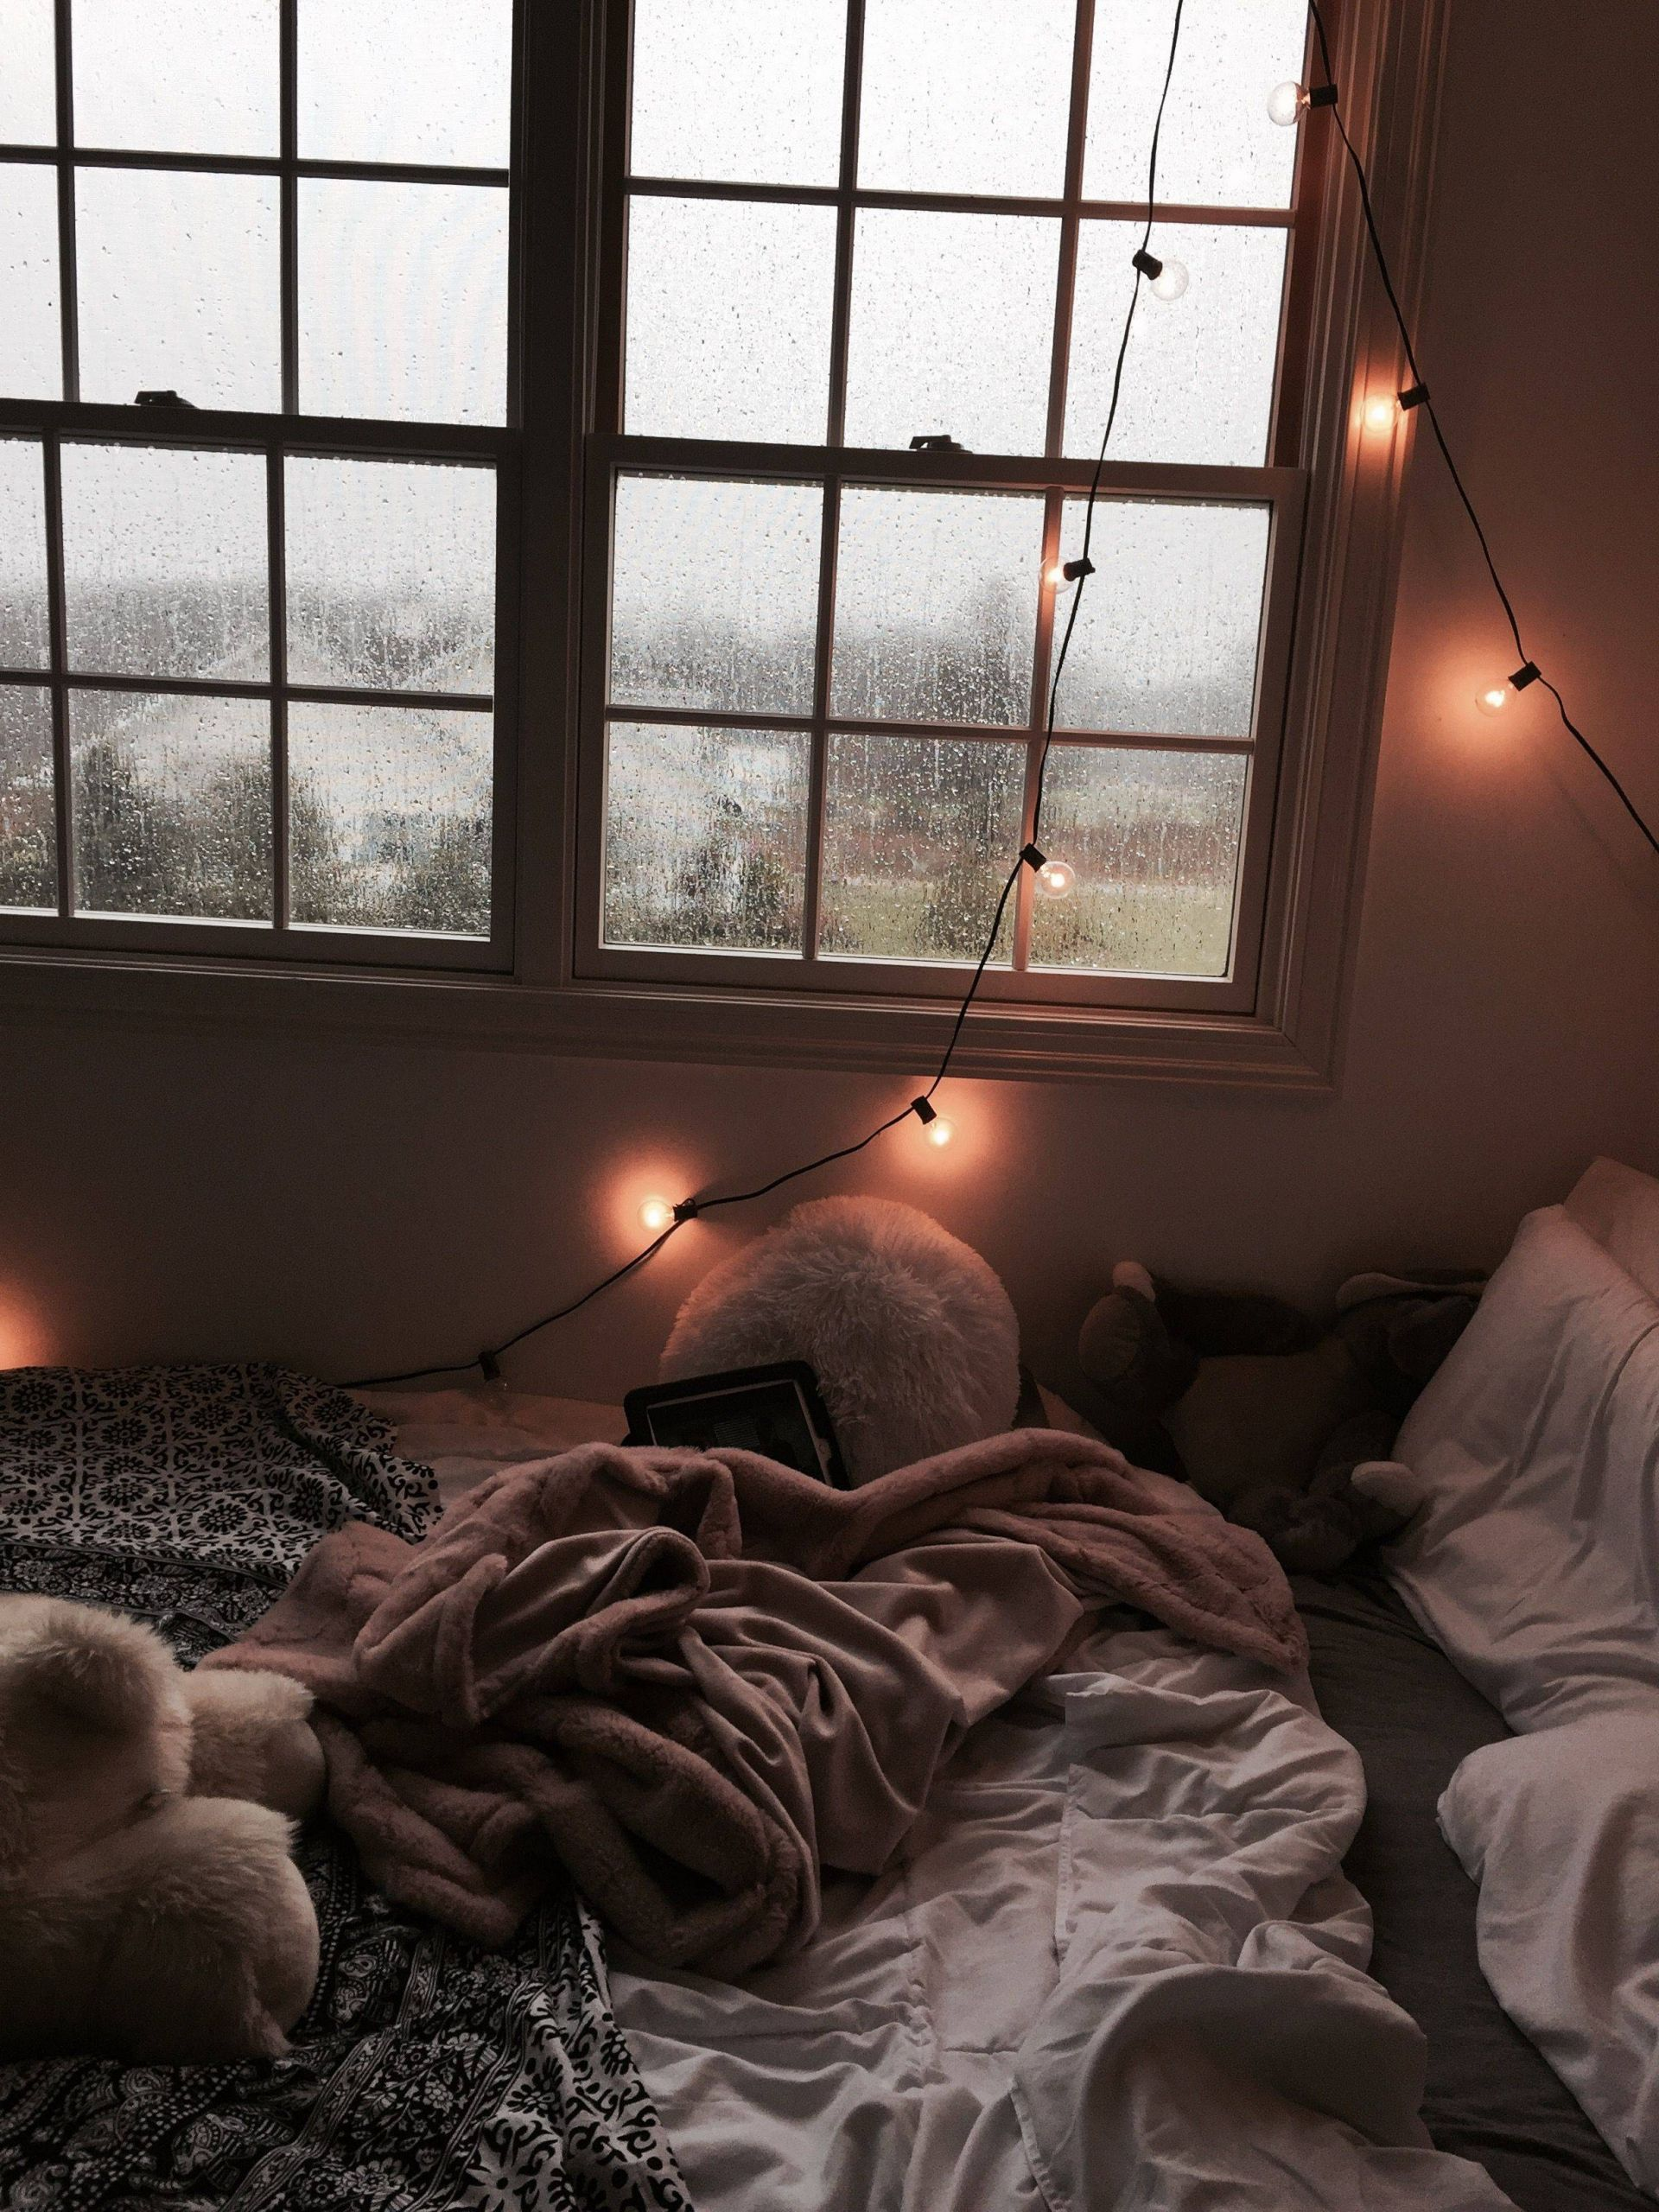 Fall Cozy and Aesthetic Lights Teen Bedroom Beautiful Fall Cozy and Aesthetic Lights Teen Bedroom